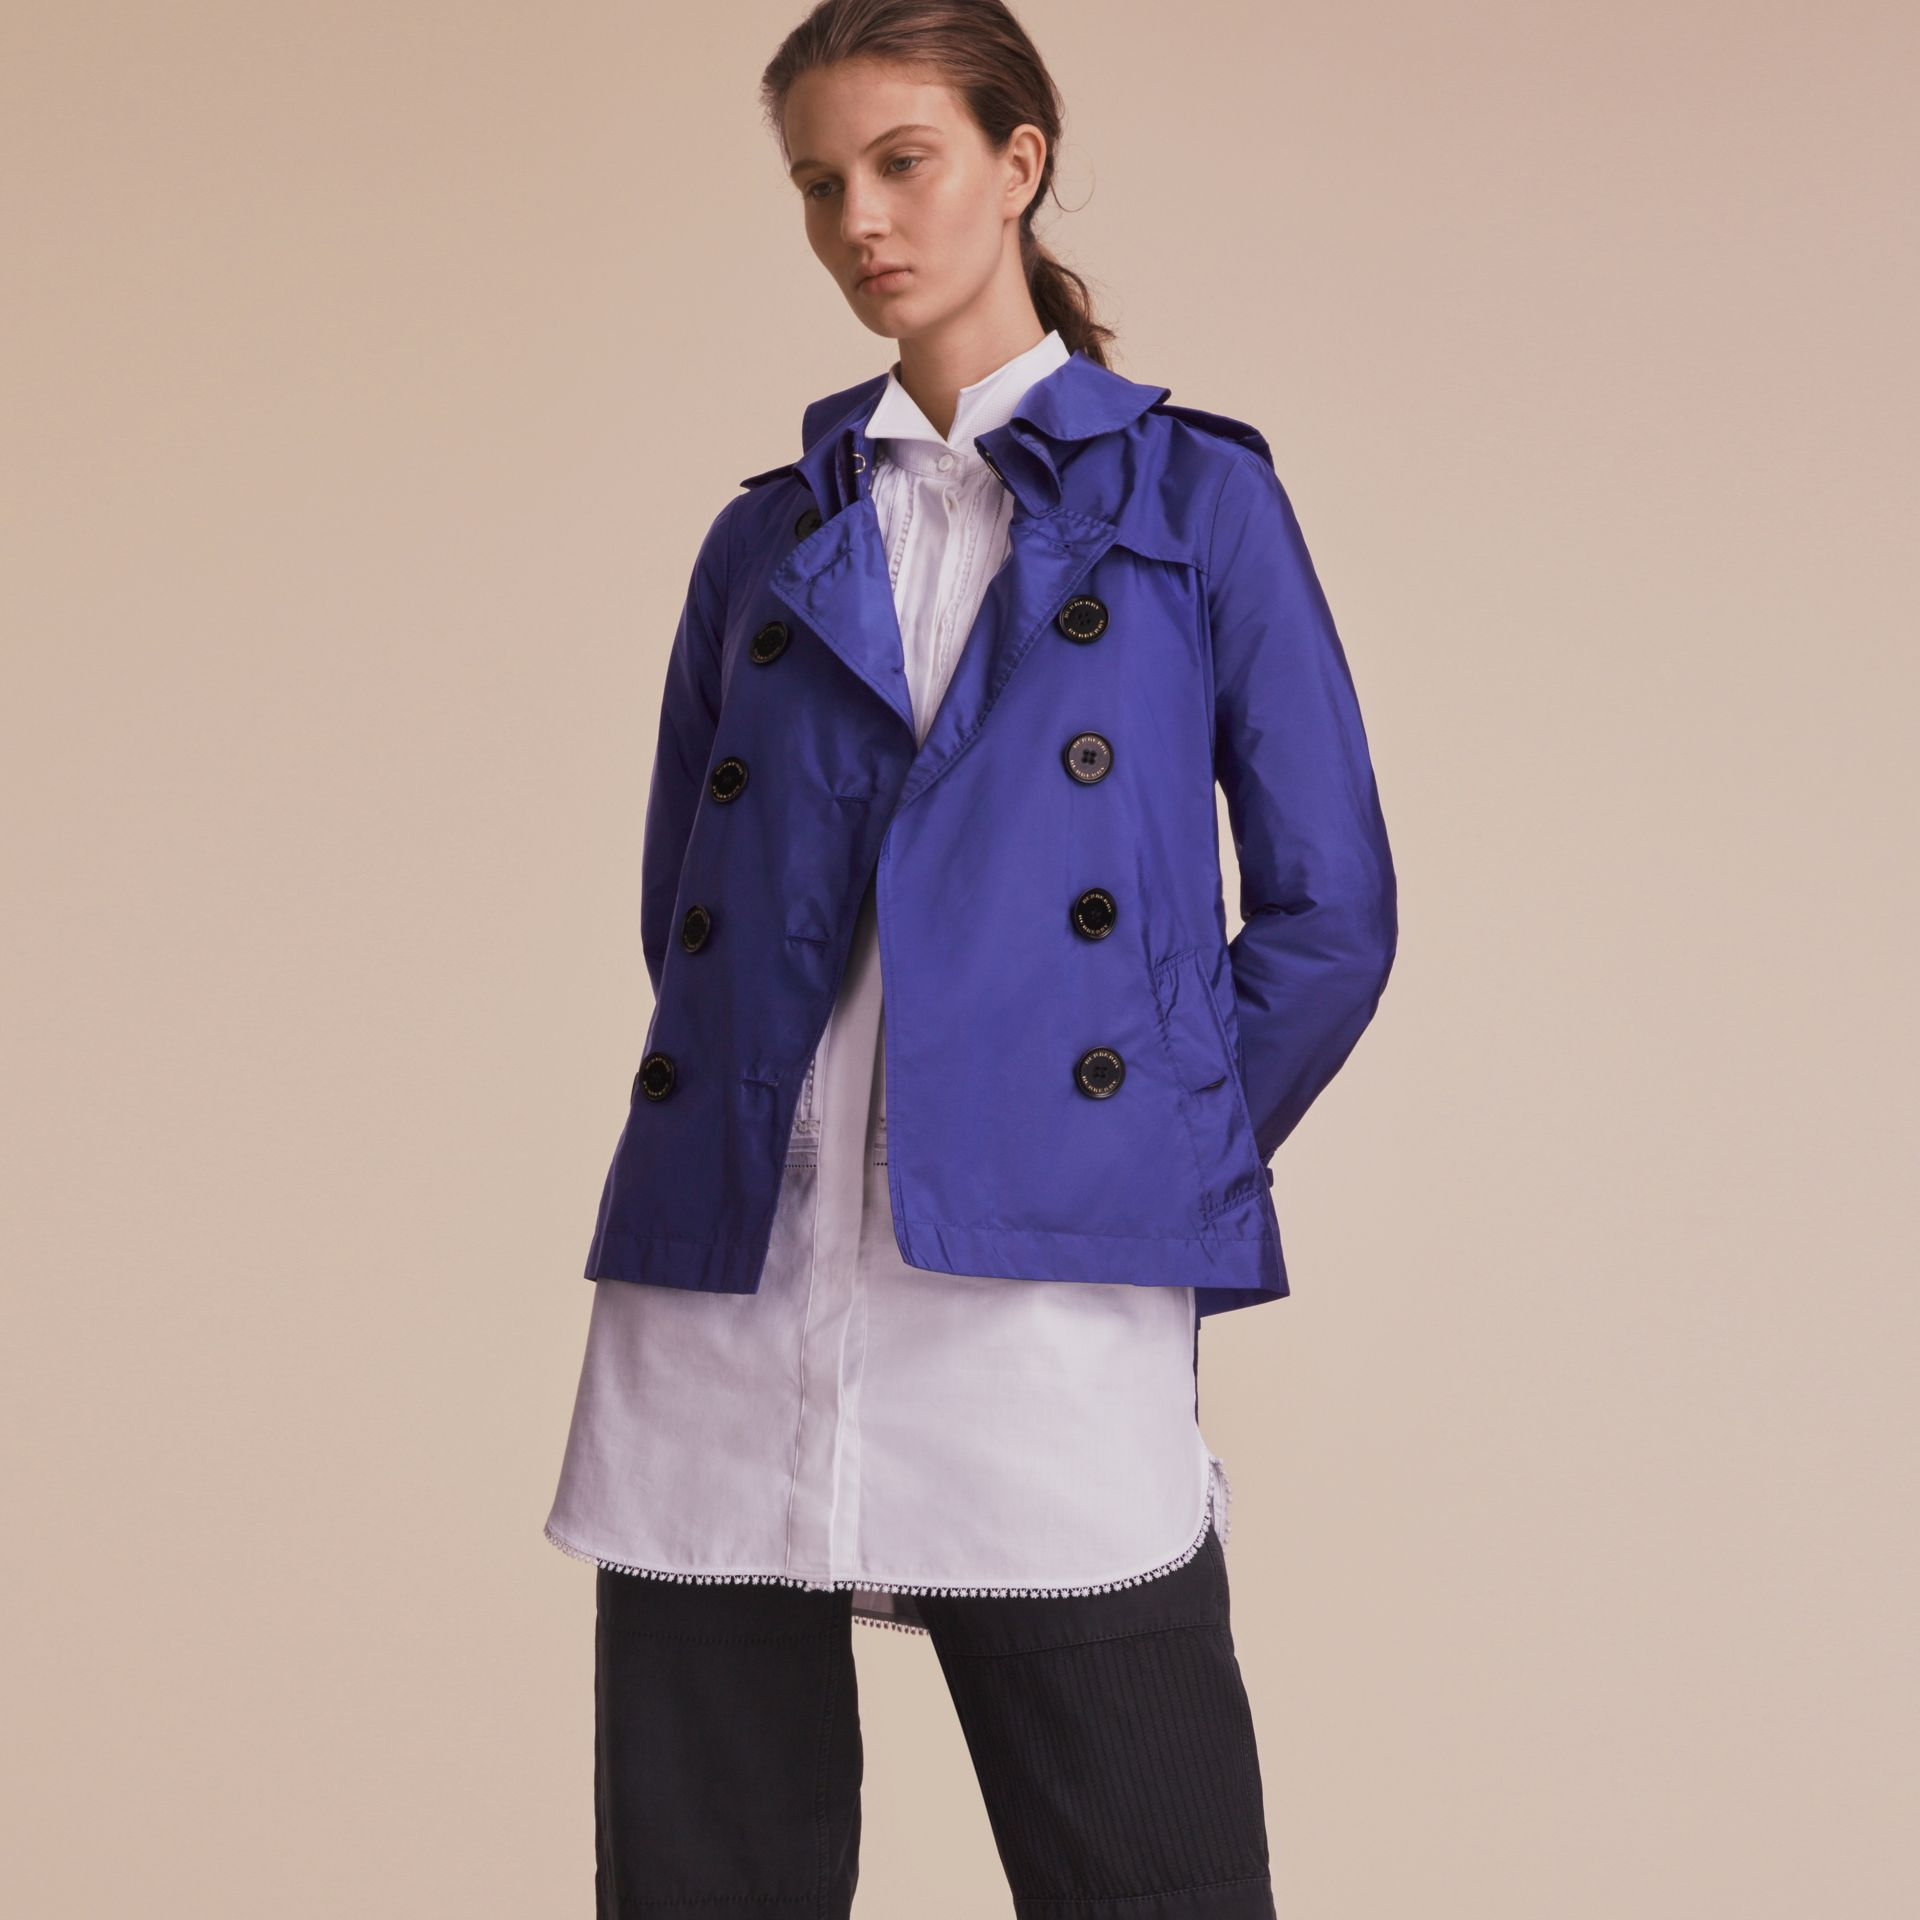 Showerproof Trench Coat in Sapphire Blue - Women | Burberry United Kingdom - gallery image 5